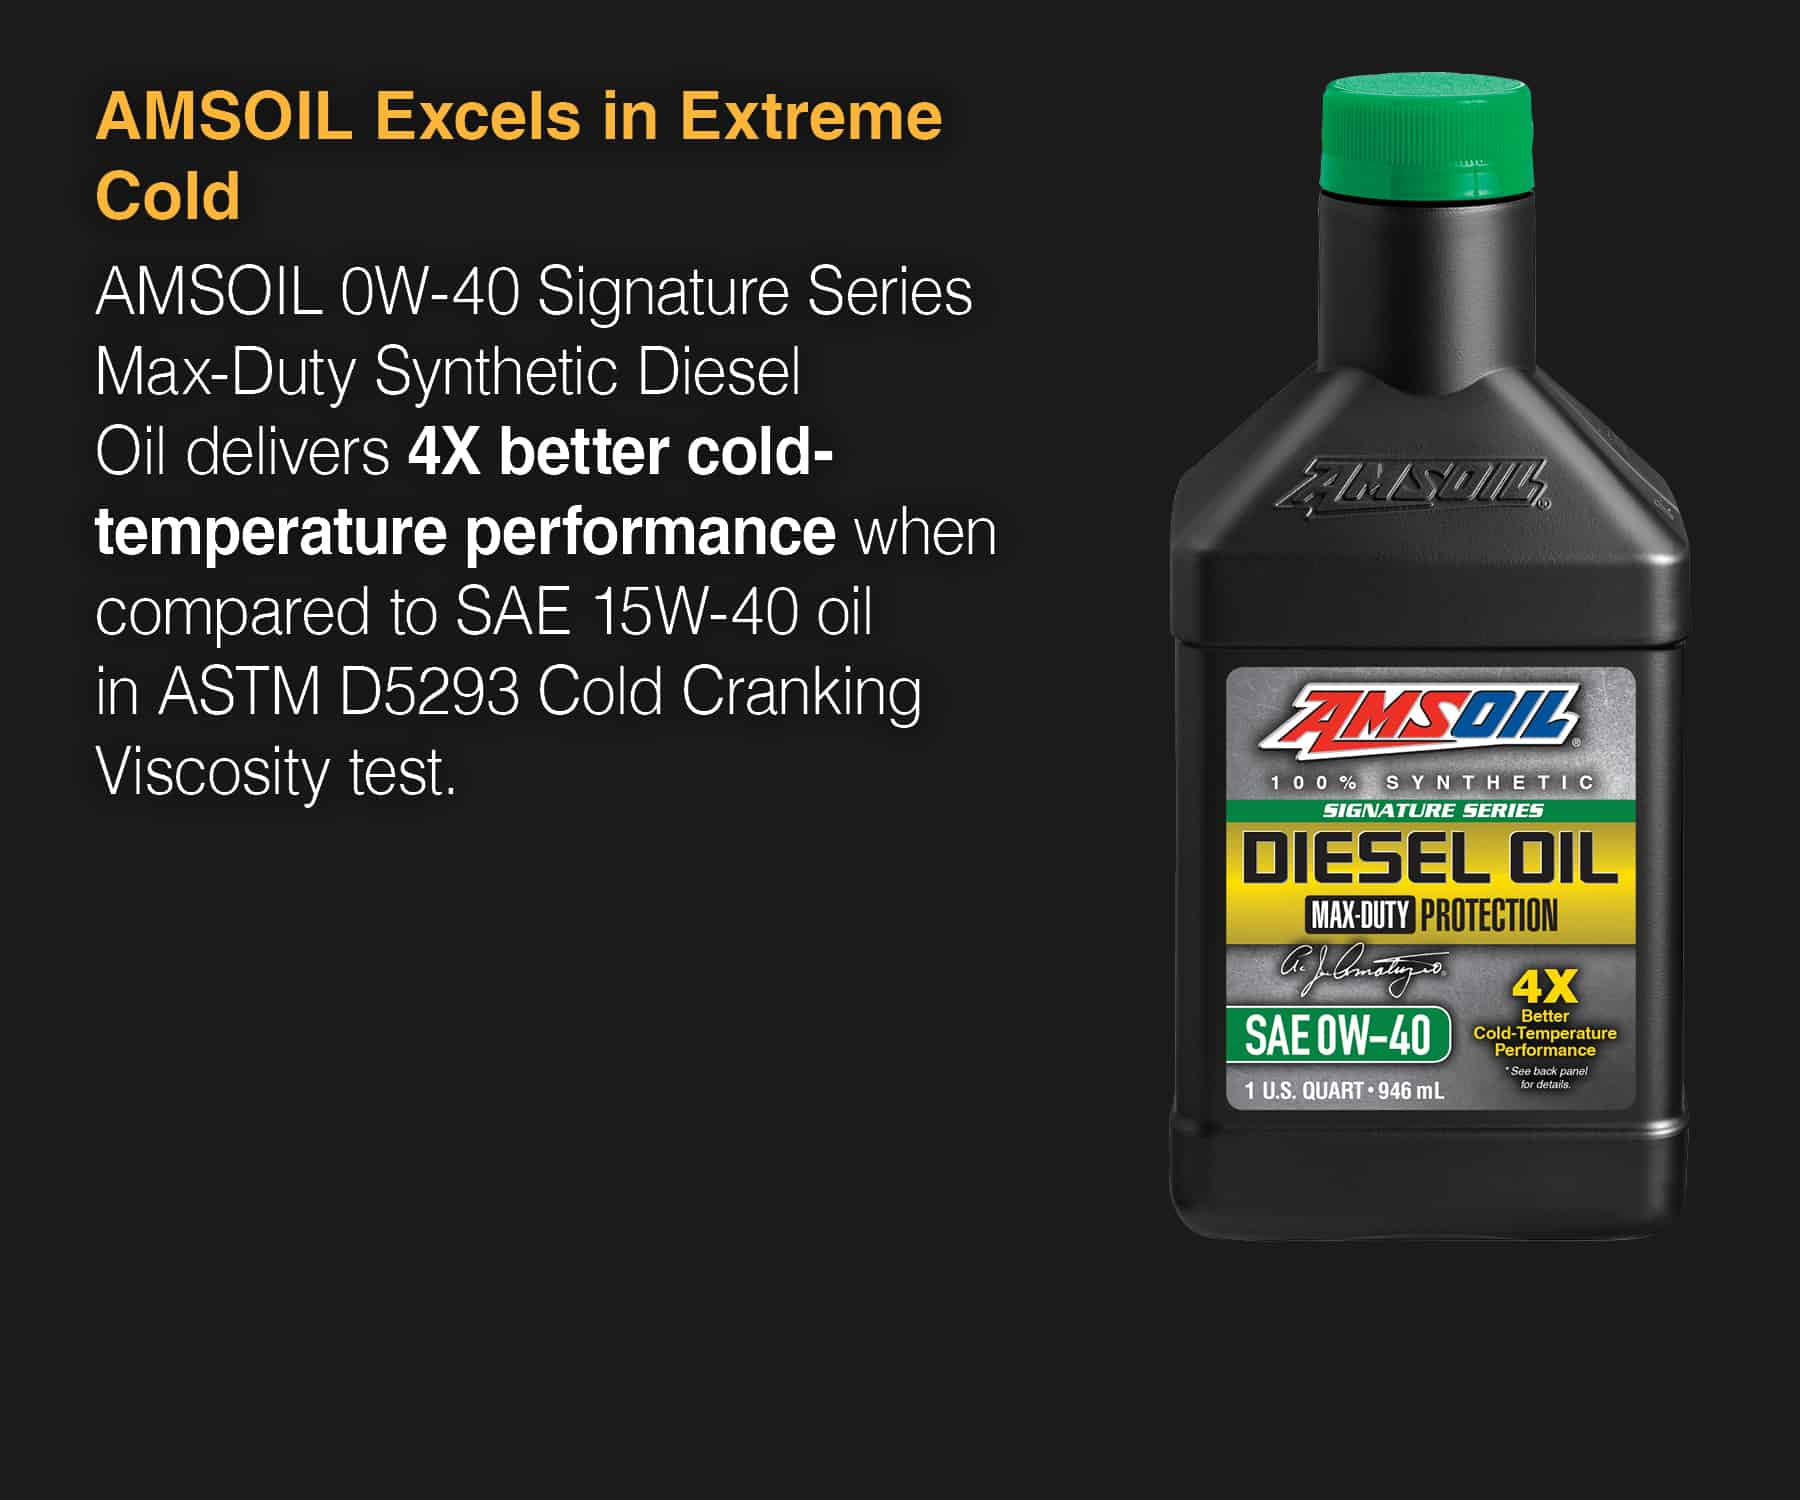 Signature Series 0W-40 Max-Duty Synthetic Diesel Oil